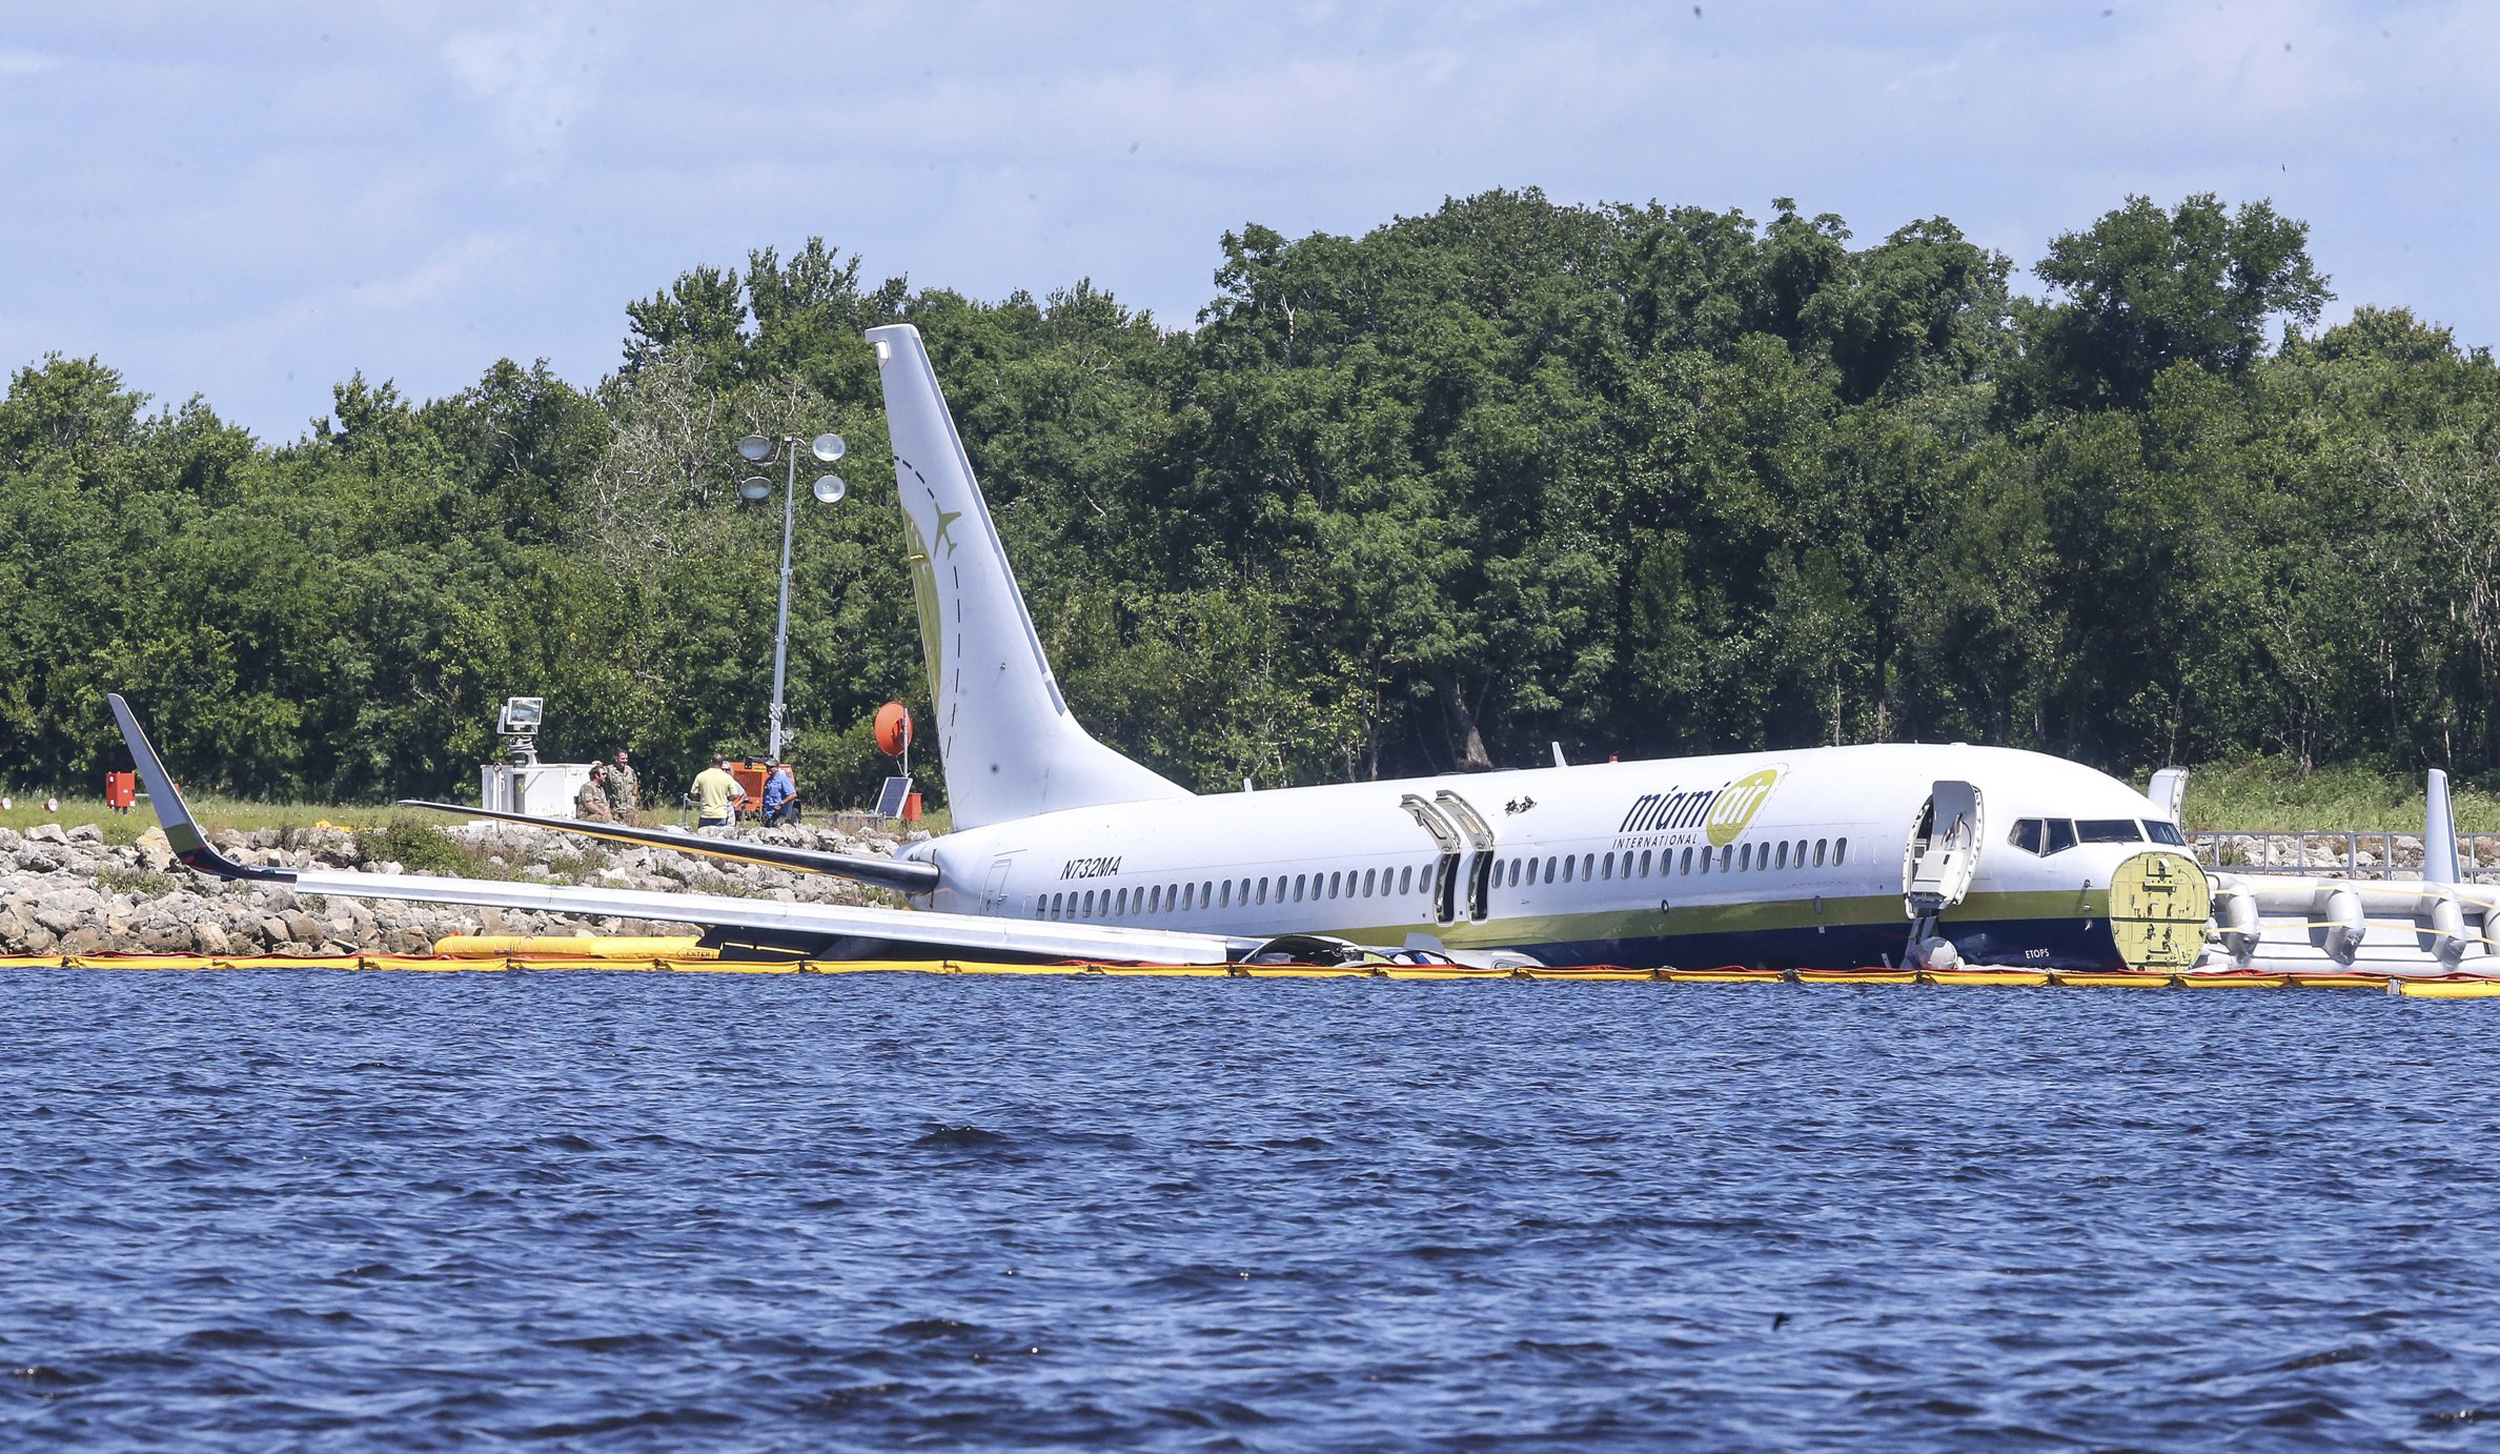 Fate of pets aboard jet that skid off runway in Florida remains unclear